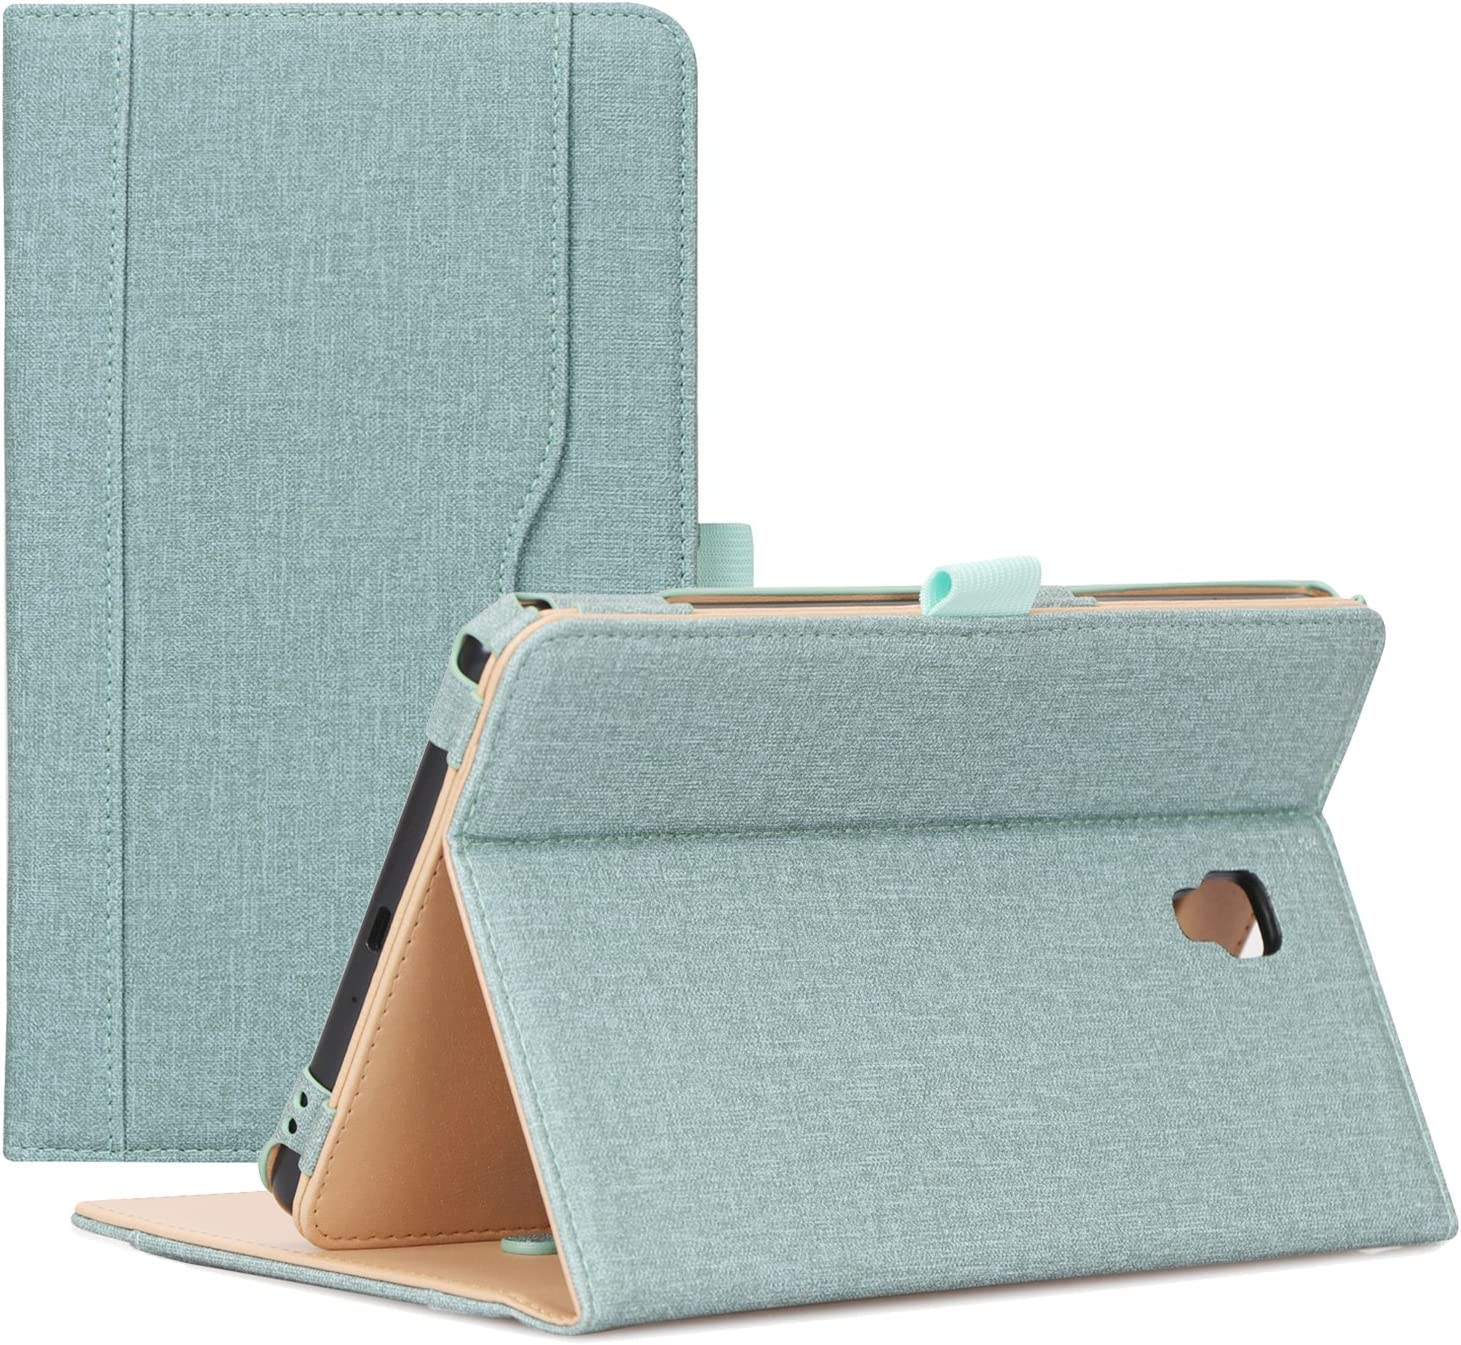 ProCase Galaxy Tab A 8.0 Case 2017 Model T380 T385 - Stand Folio Case Cover for 8.0 inch Galaxy Tab A Tablet 2017 T380 T385 -Teal